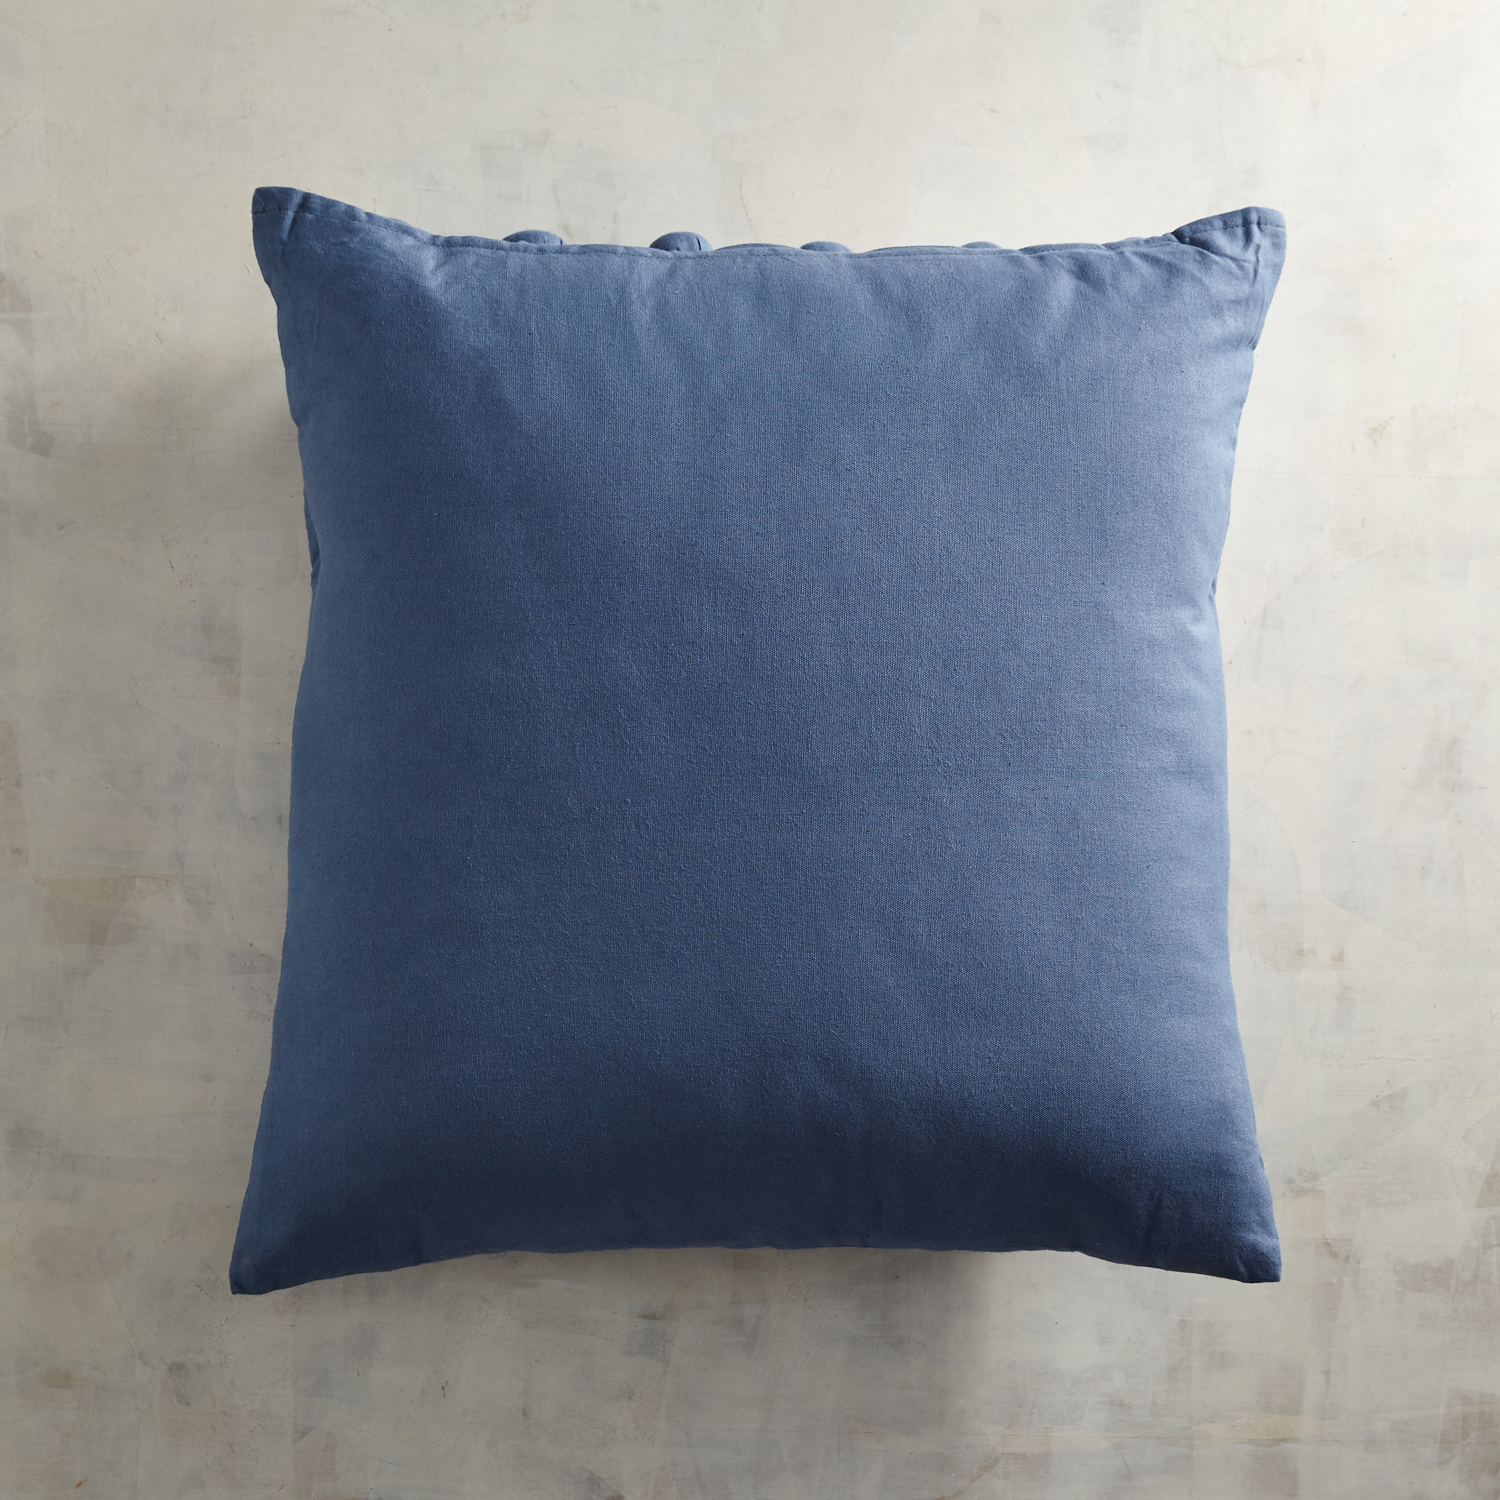 Embroidered Montauk Blue Floral Pillow